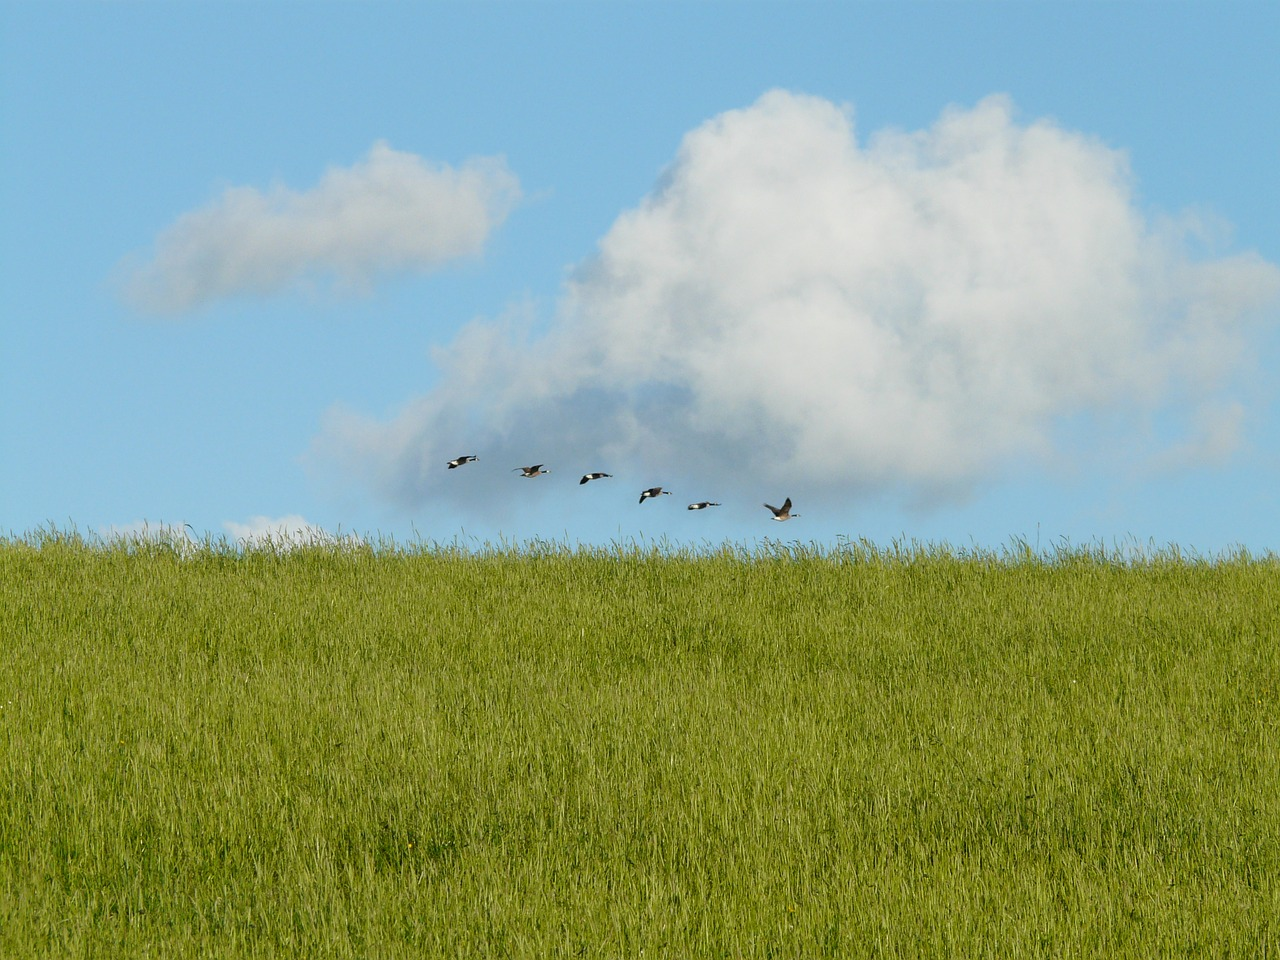 geese migratory birds fly free photo